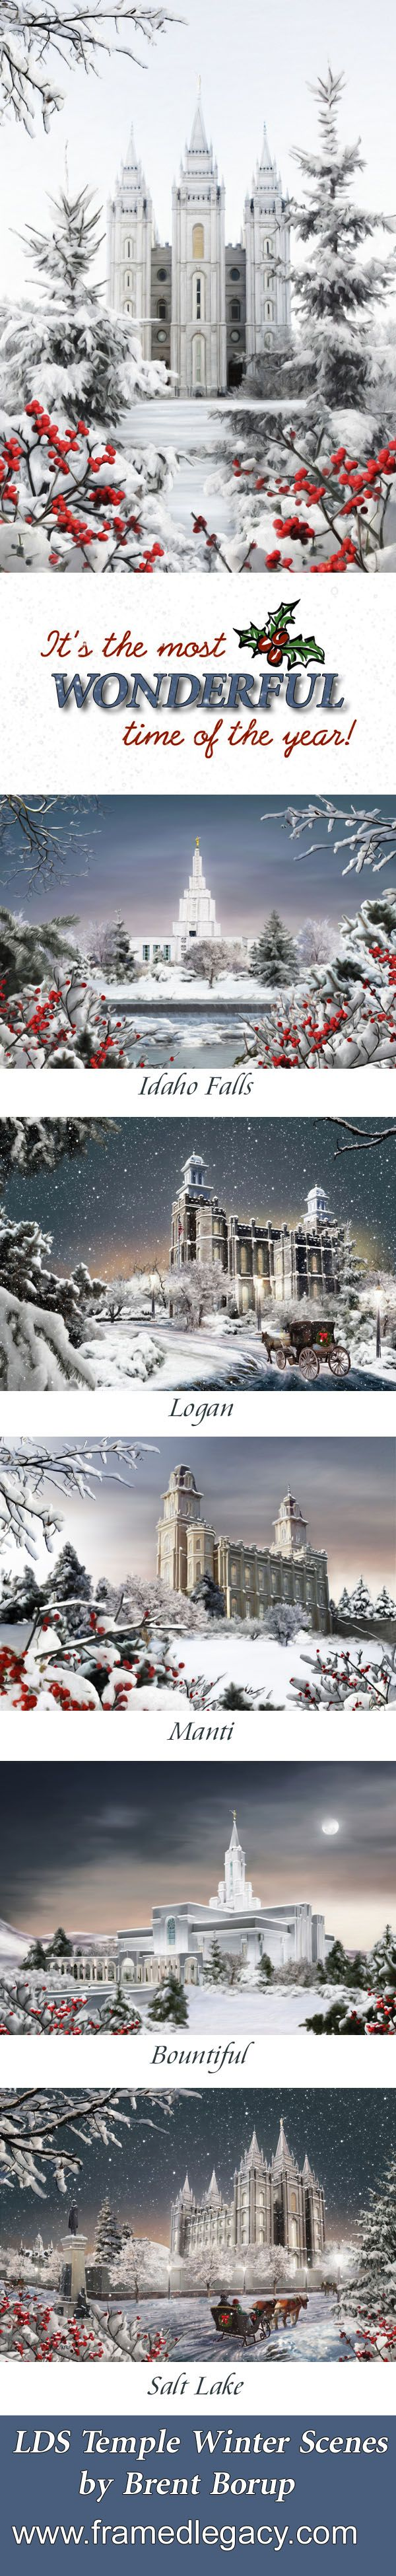 LDS Temple Winter Scenes by Brent Borup.  I love this Christmas season. The church is true